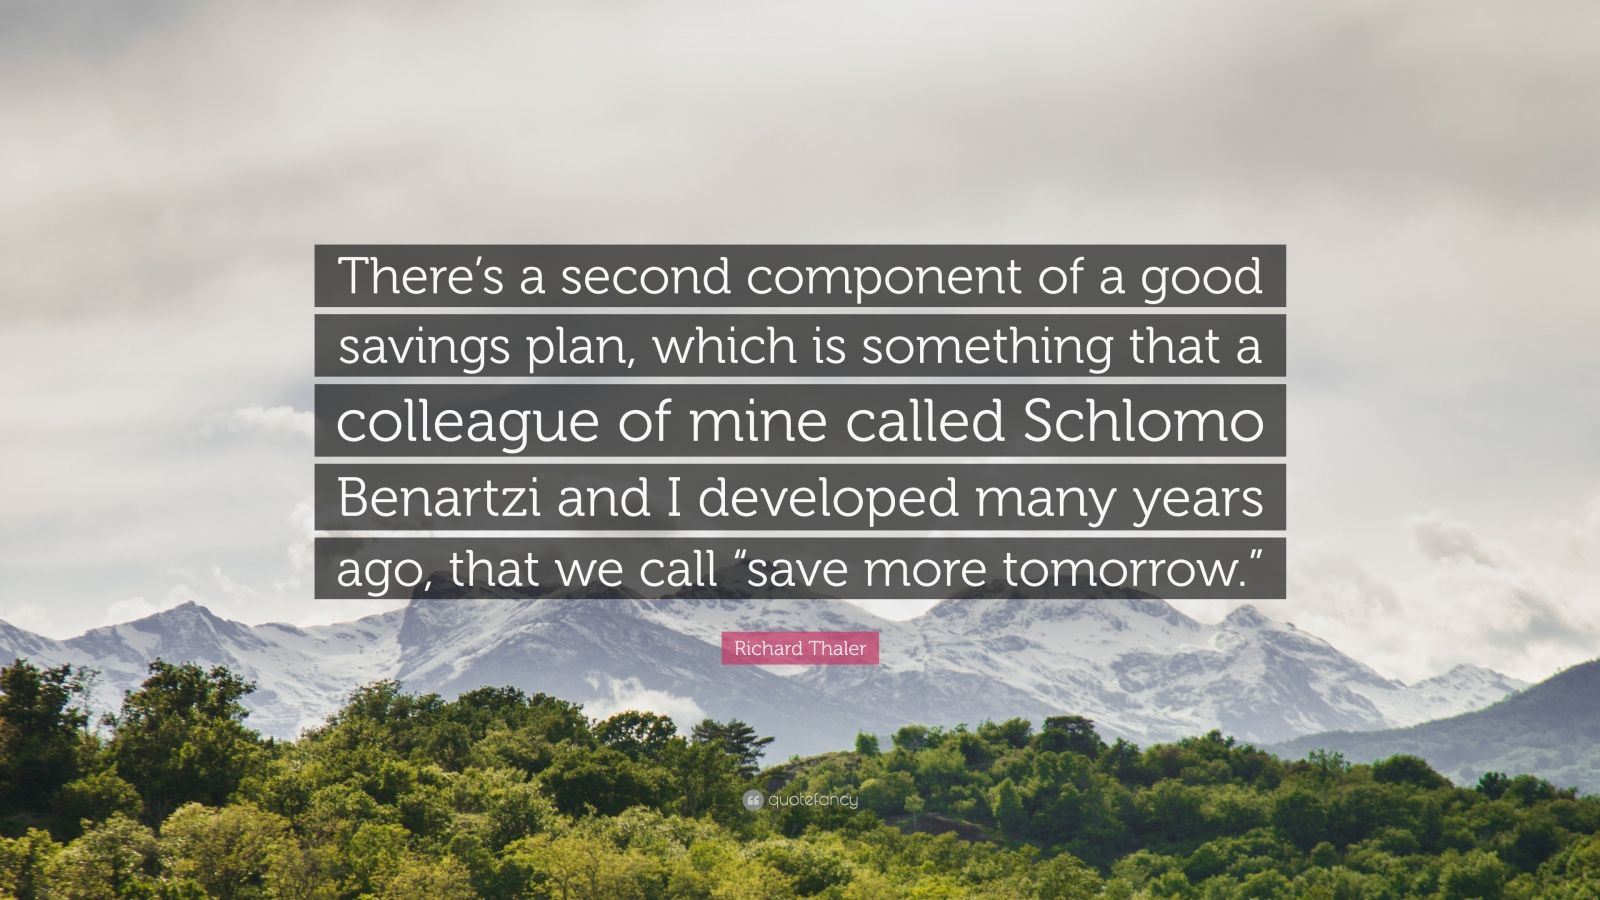 """Richard Thaler Quote: """"There's a second component of a good savings plan, which is something that a colleague of mine called Schlomo Benartzi and I developed many years ago, that we call """"save more tomorrow."""""""""""